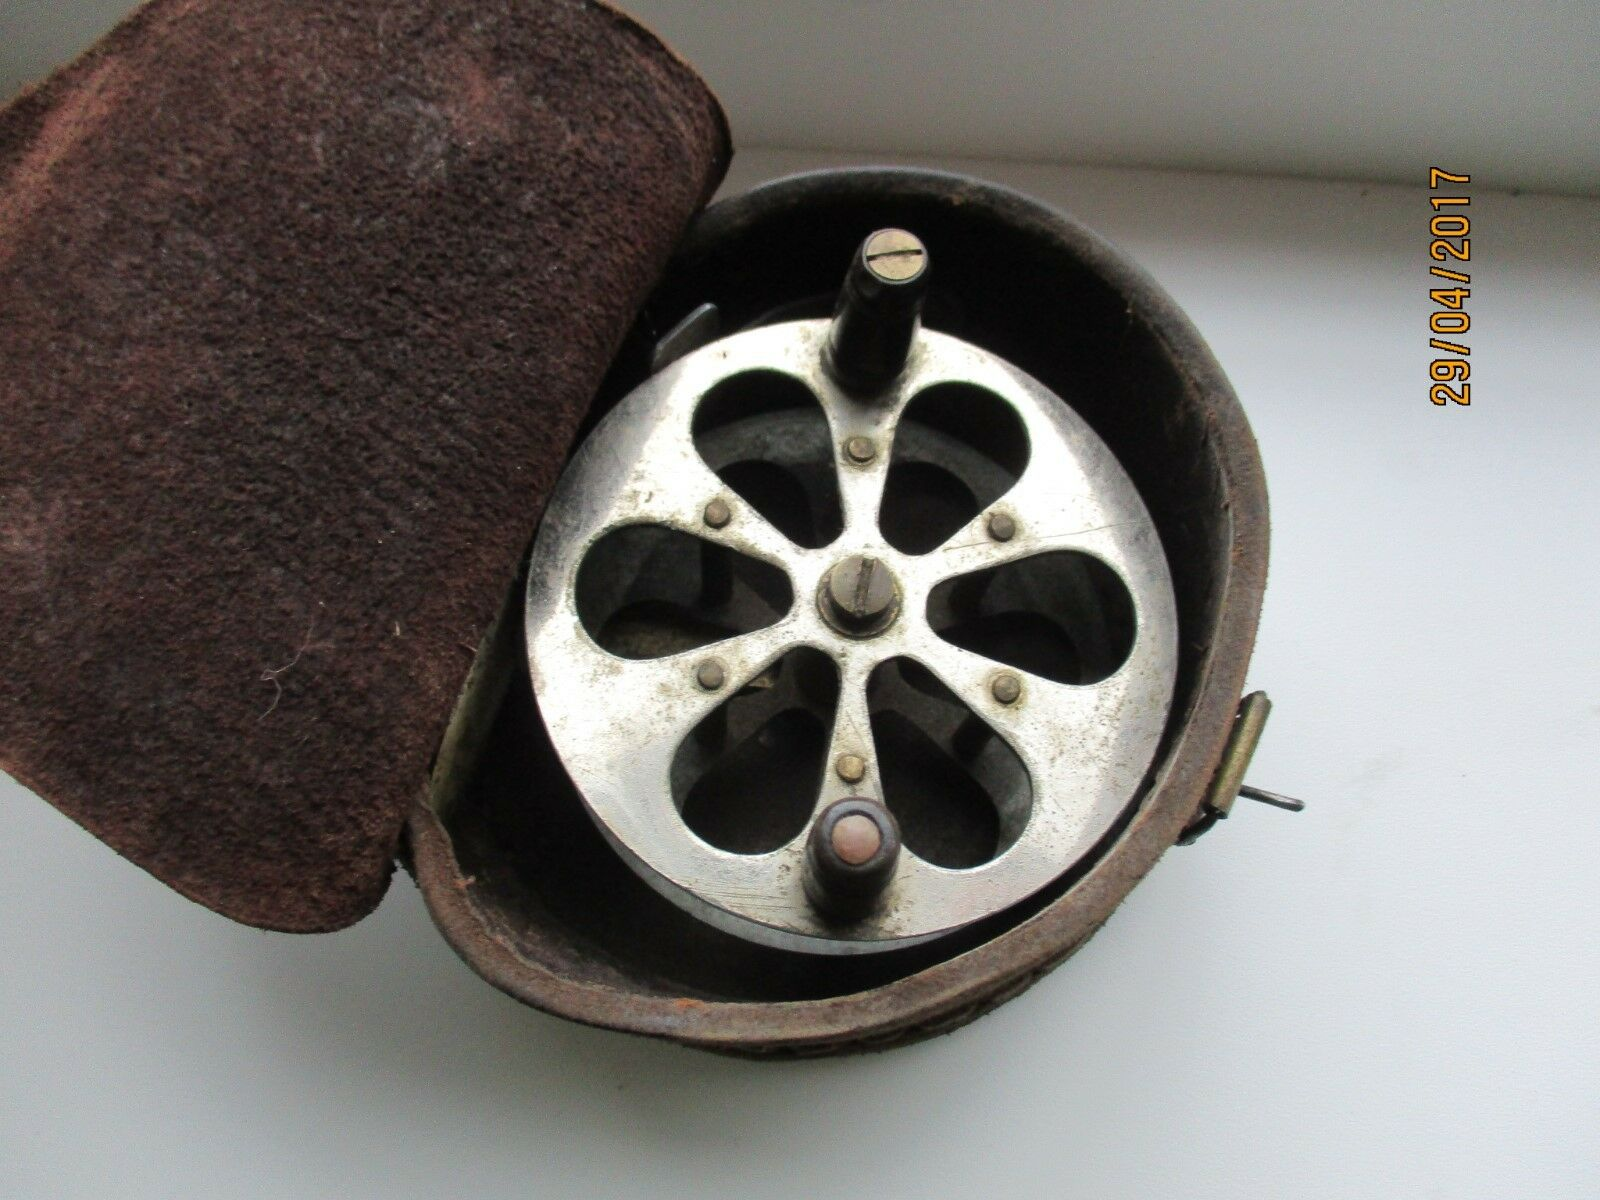 VINTAGE FISHING REEL IN LEATHER BOX